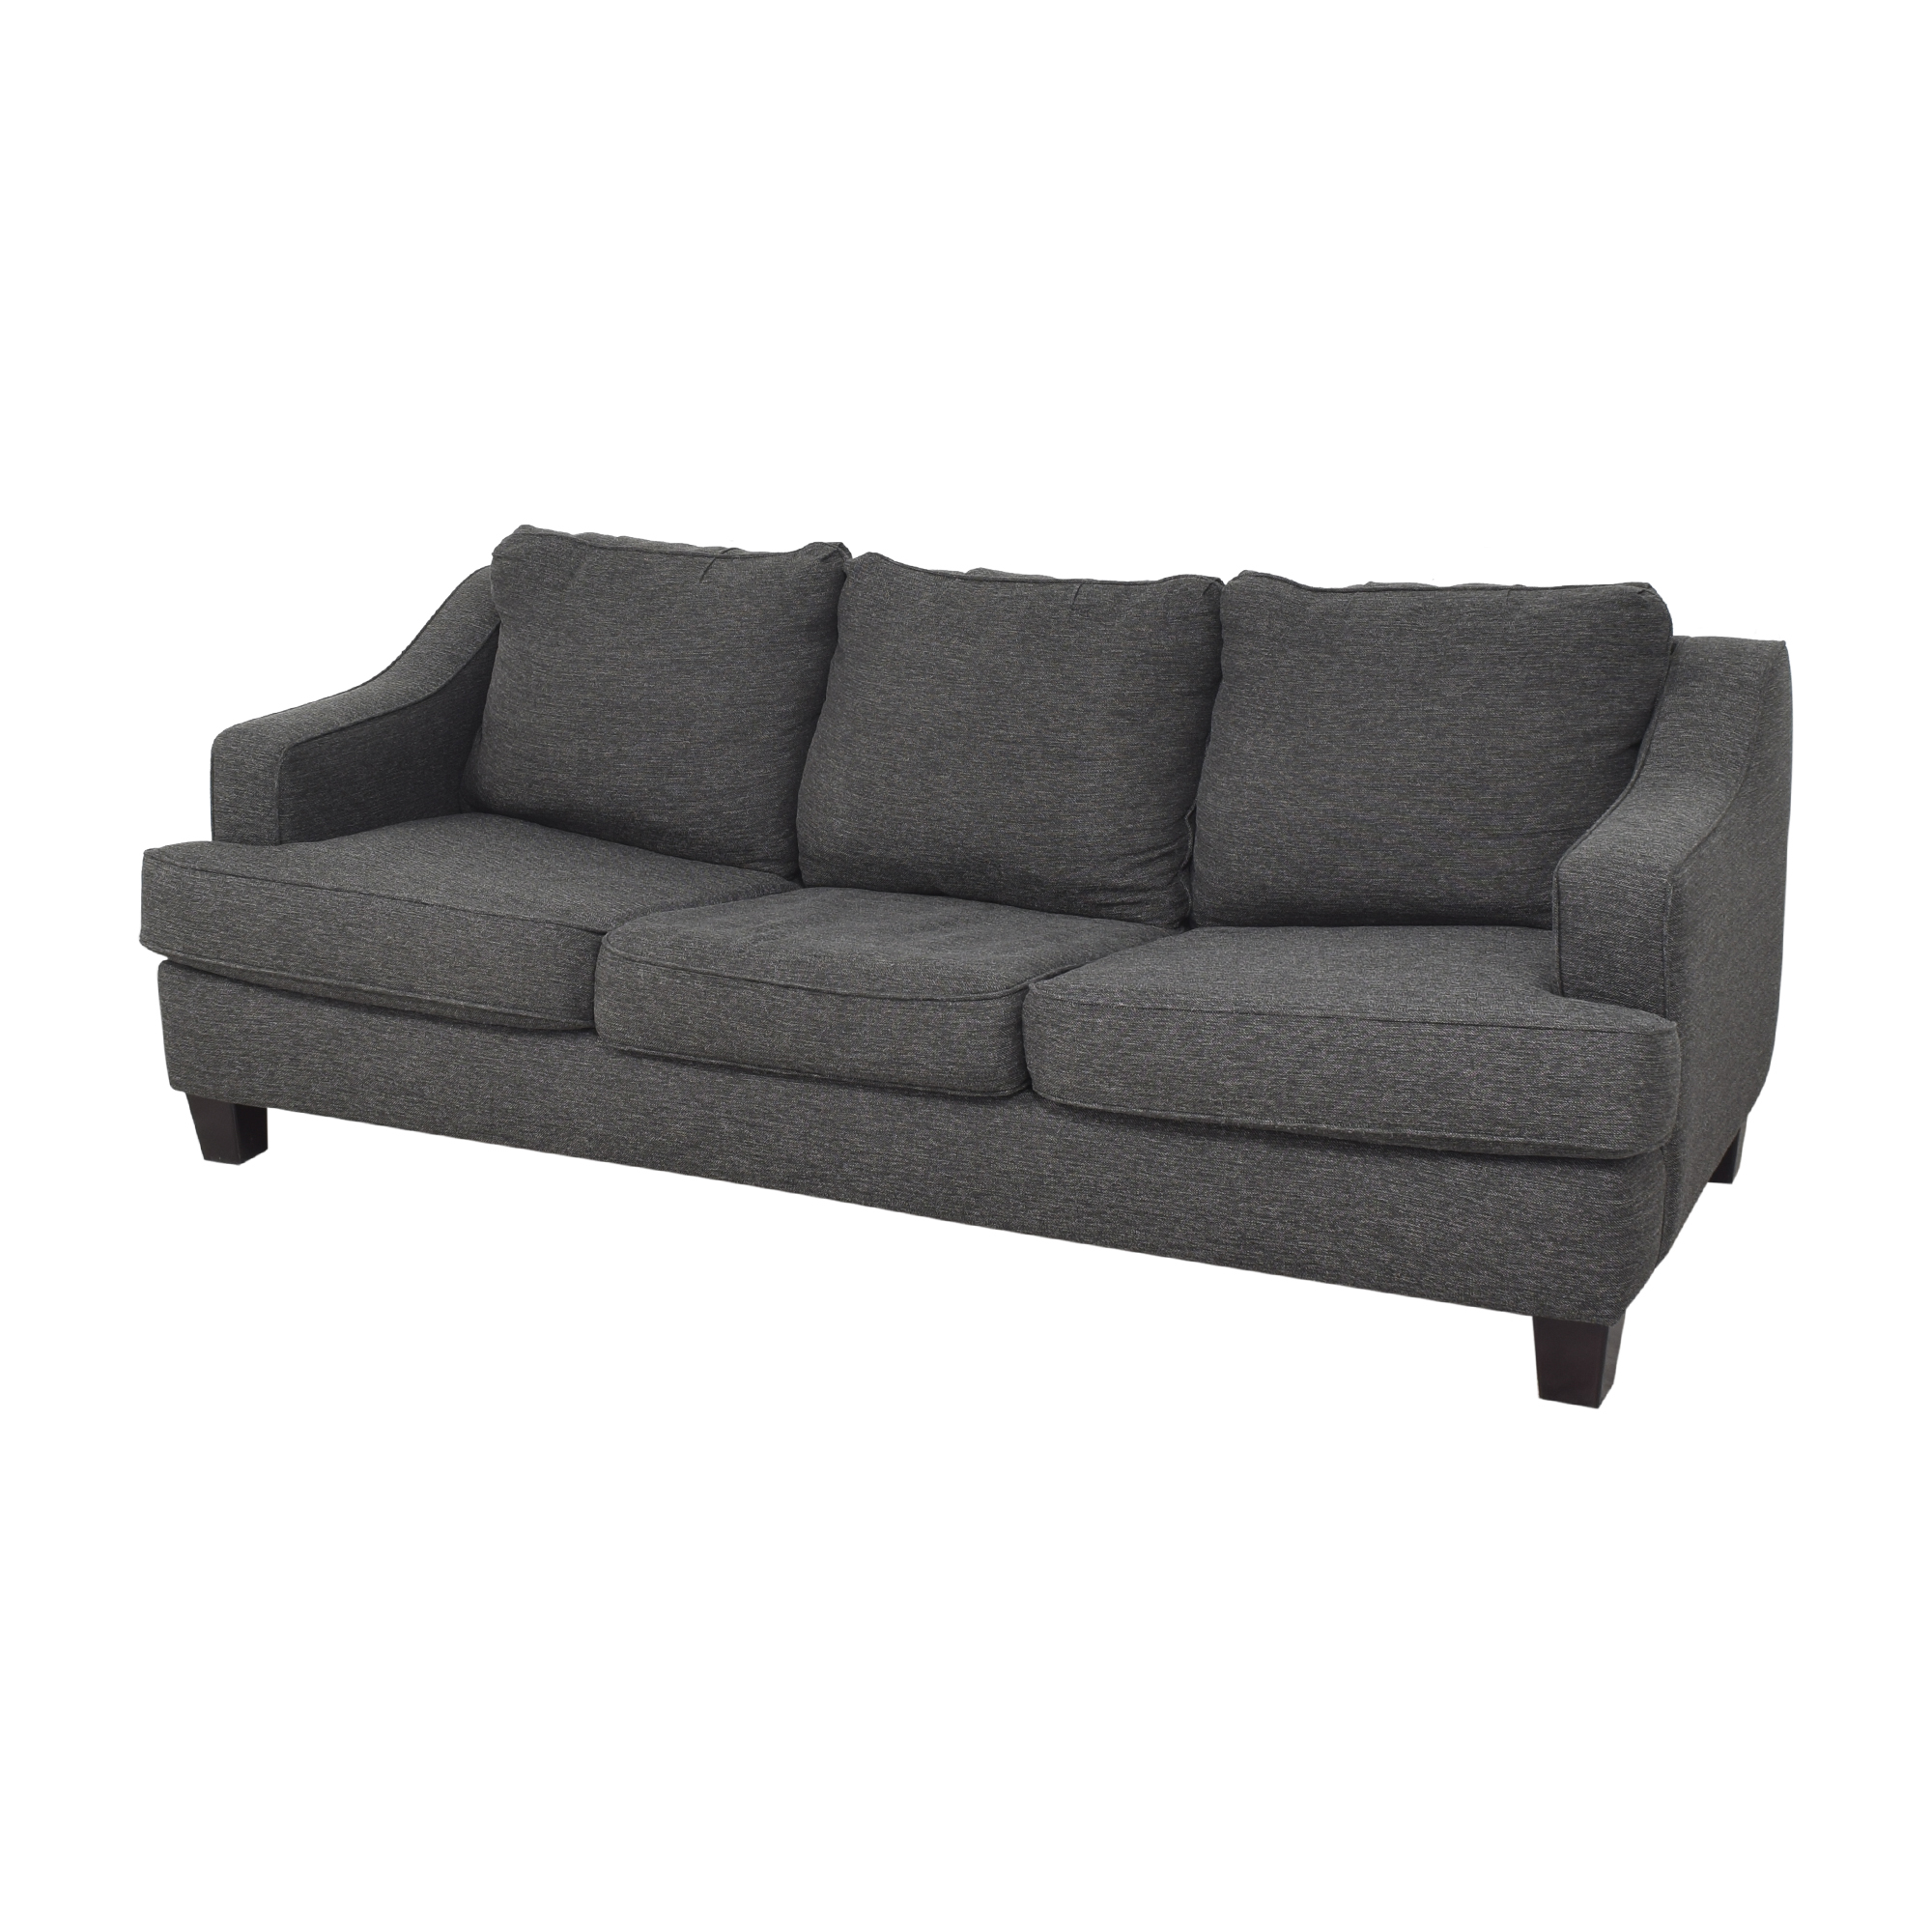 Raymour & Flanigan Modern Queen Sleeper Sofa sale